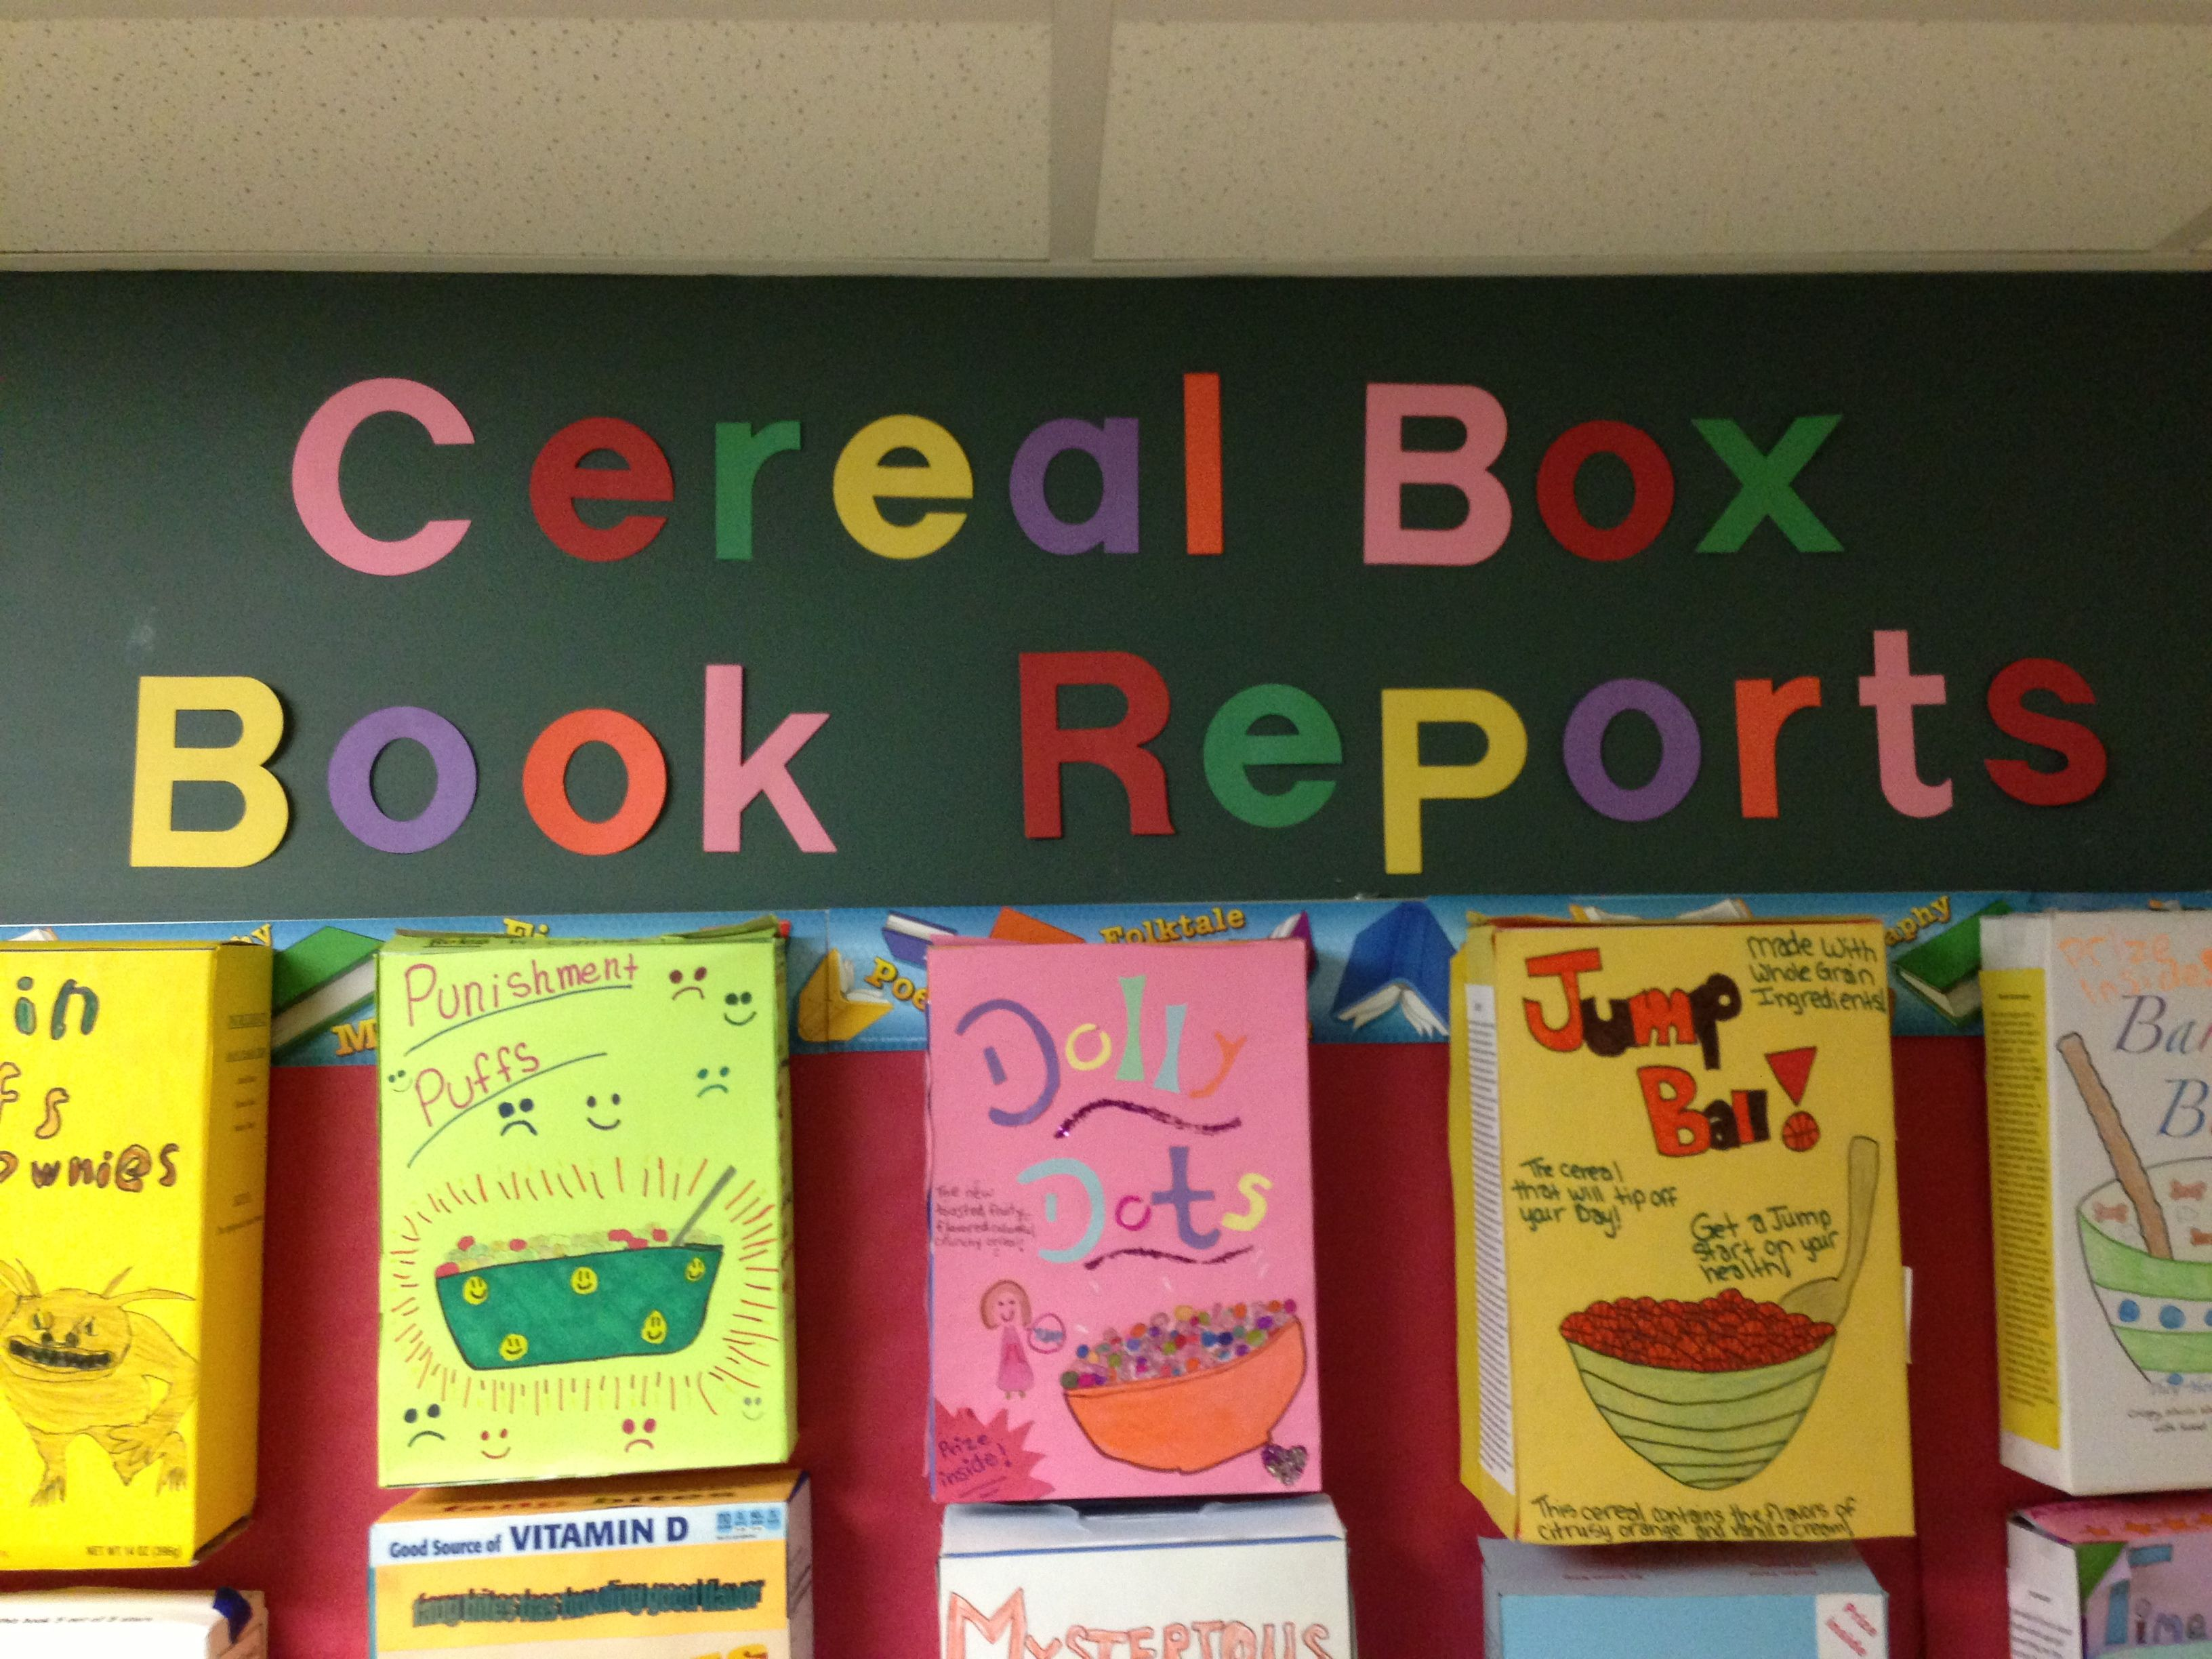 book report cereal box These preprinted boxes make a fun and familiar cereal-box book-report project simple the guide offers creative, standards-based presentation ideas and a rubric.